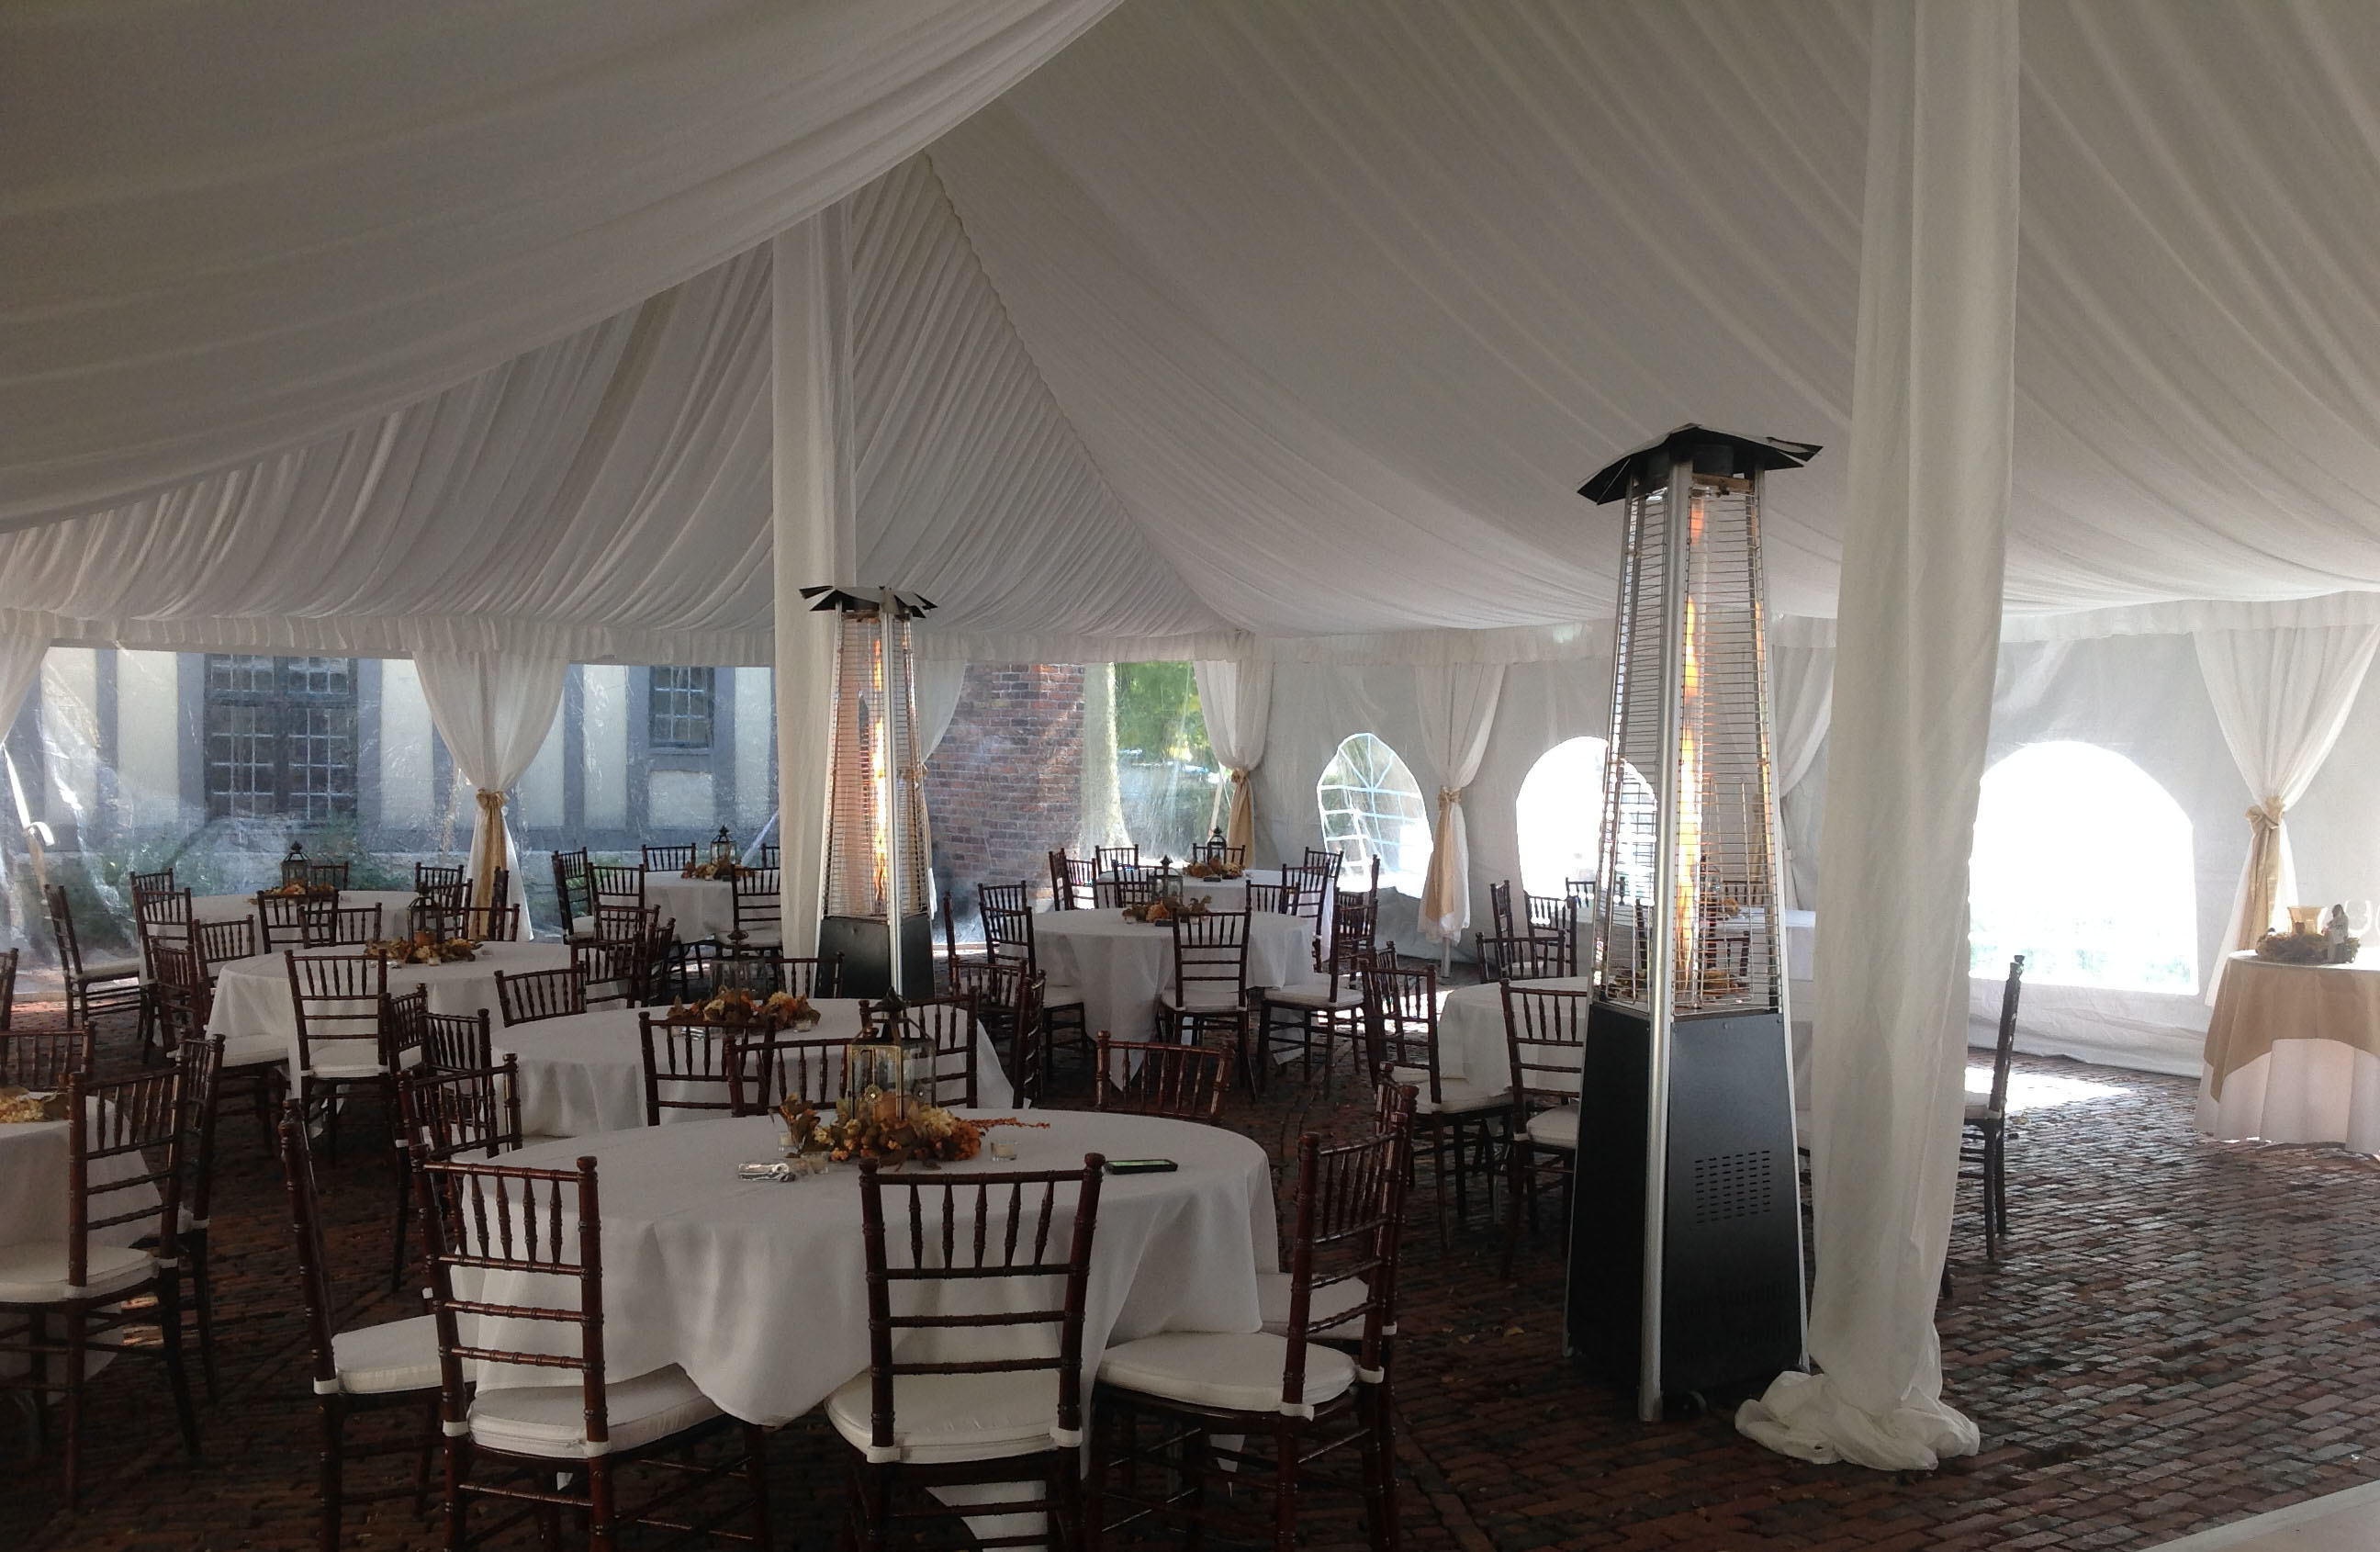 Tent Liner_Center Pole Drapes_Heater_Round Table_Wood Chivari Chair copy.jpg